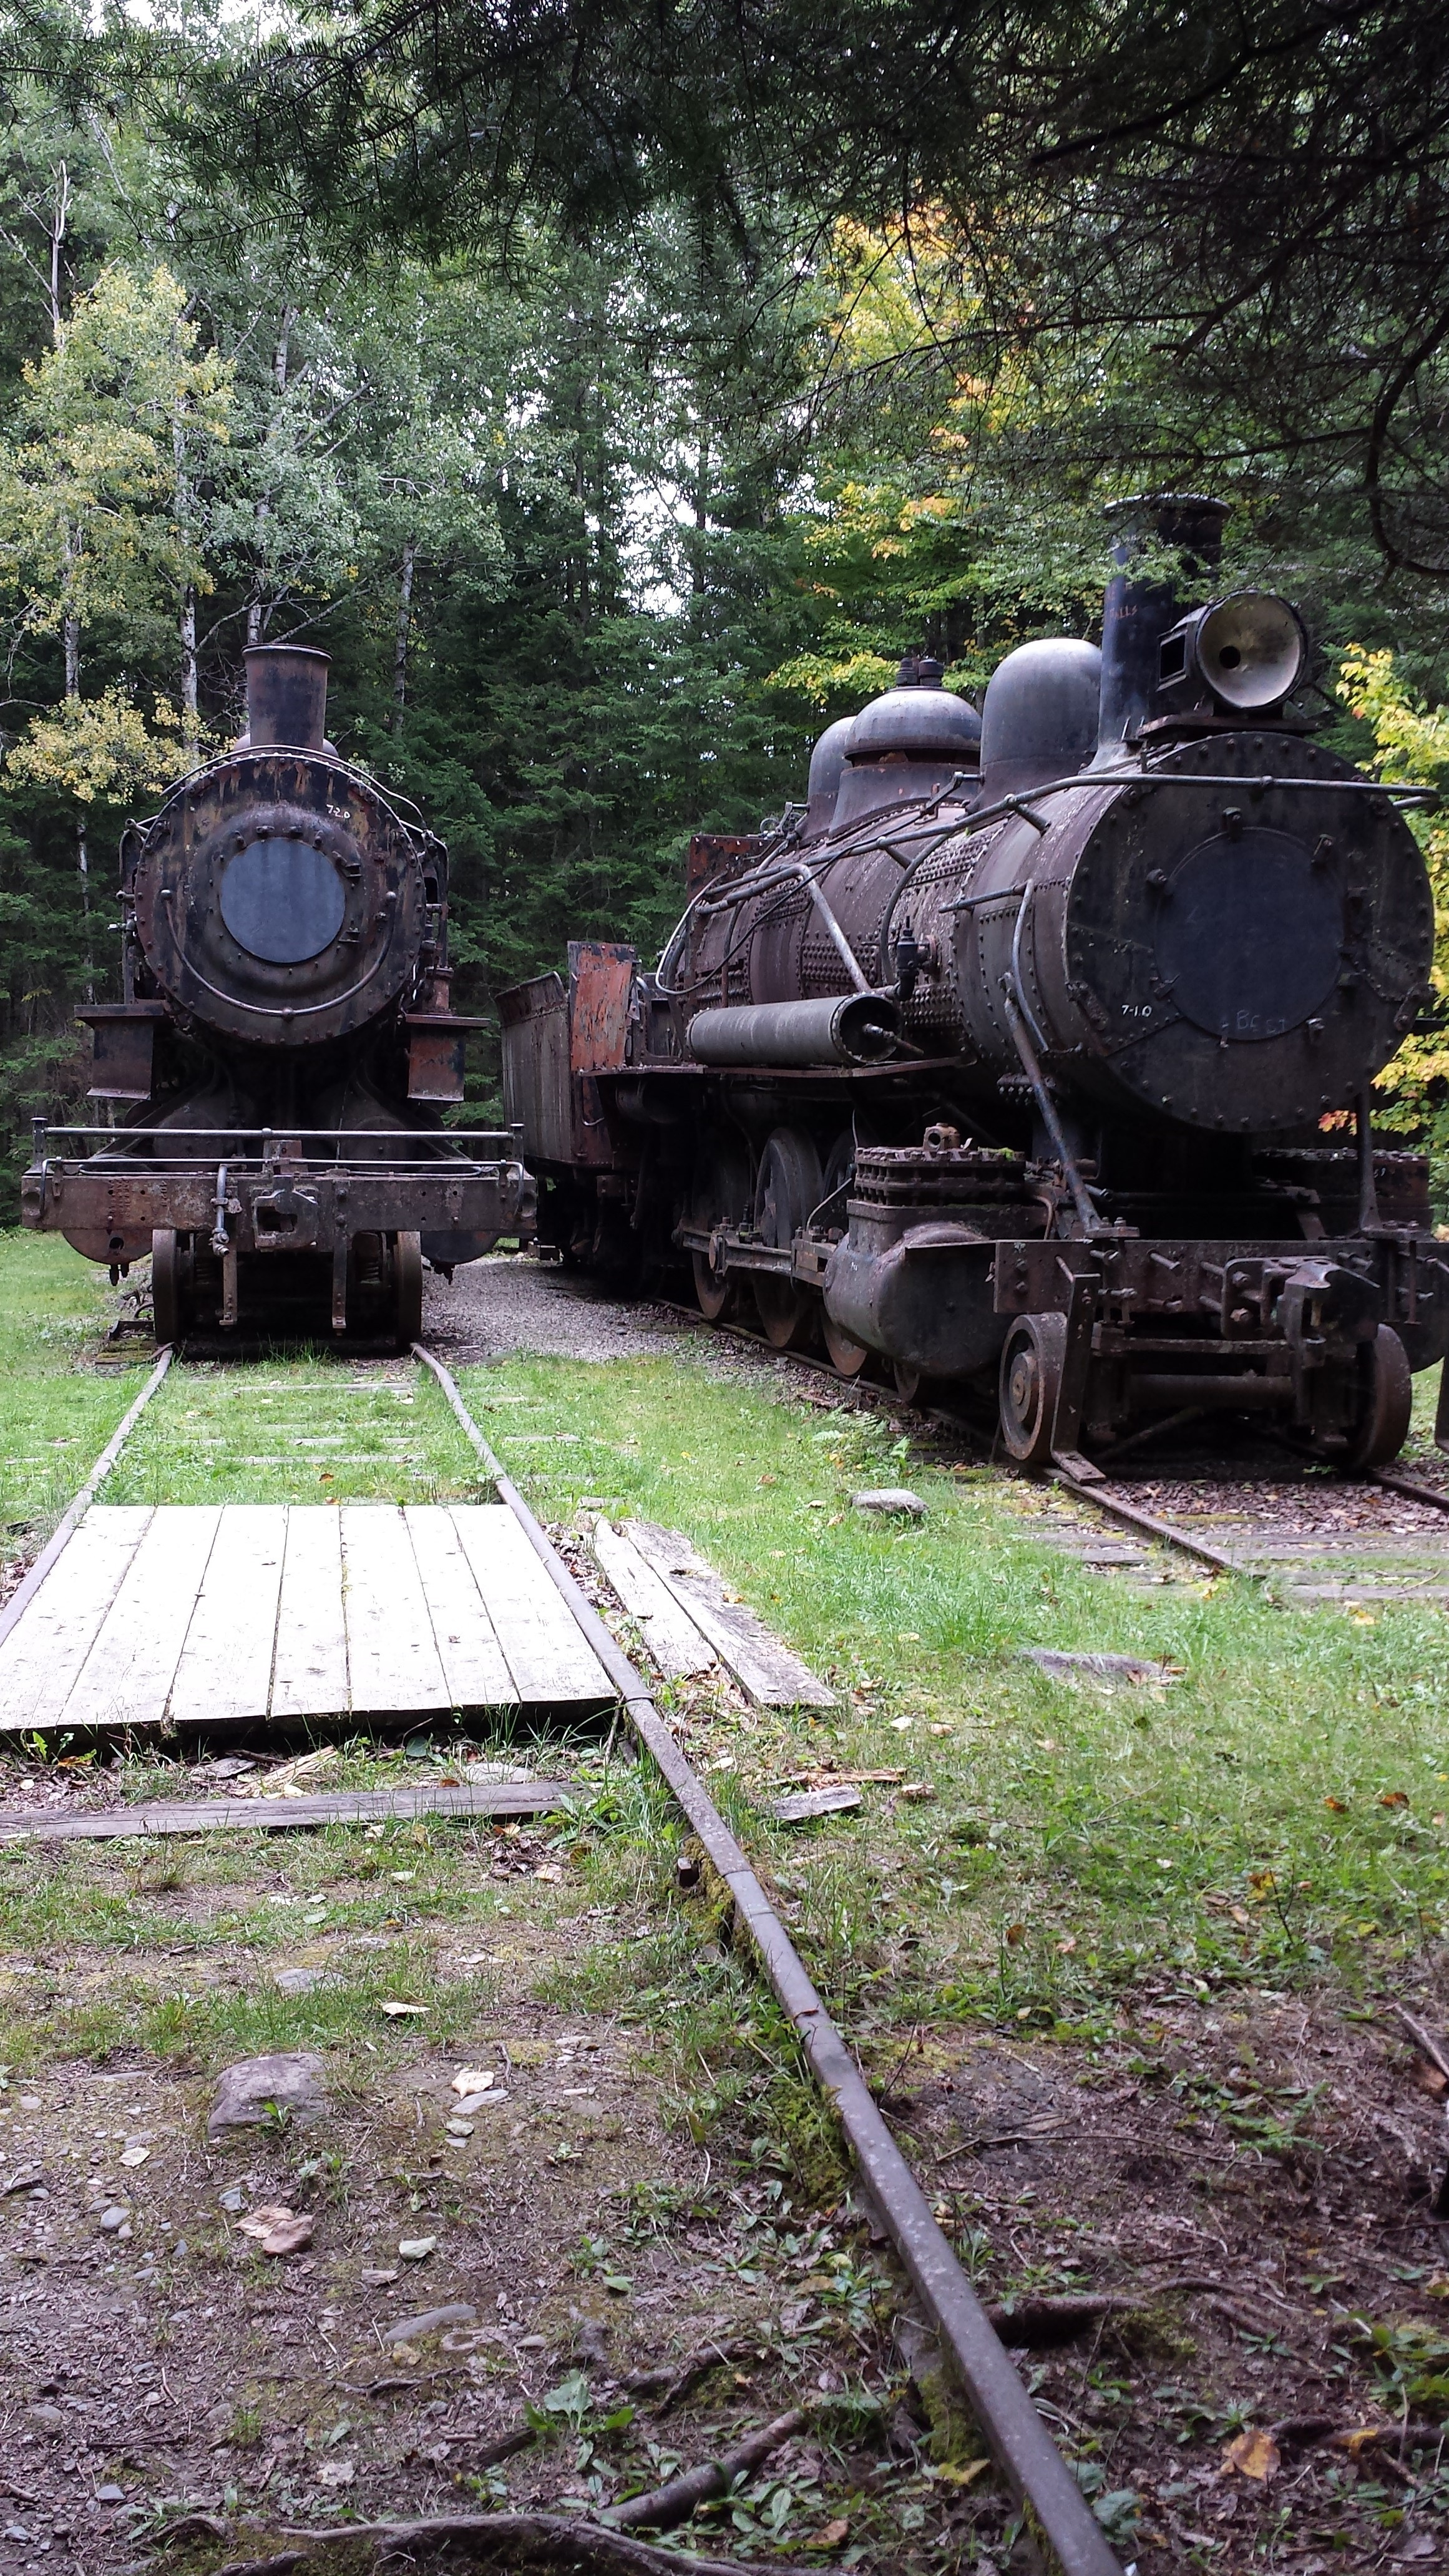 Find the Abandoned Locomotives in the North Maine Woods